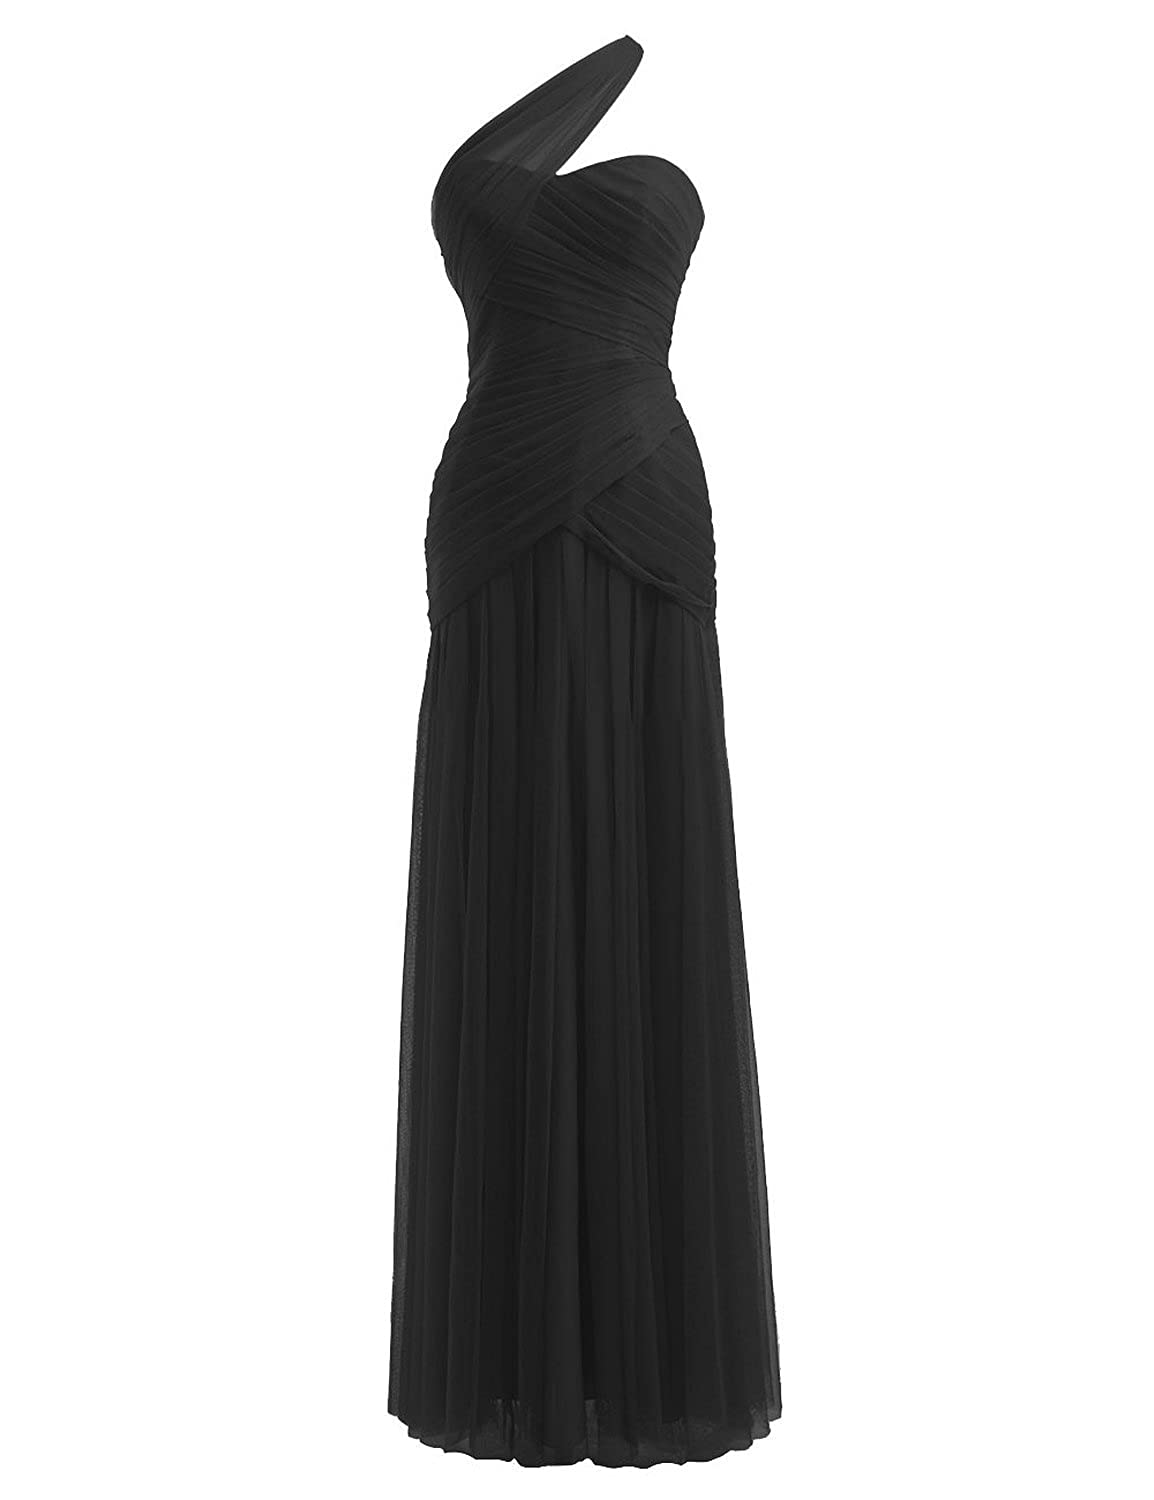 Beyonddress® Womens One Shoulder Pleated Chiffon Floor Length Prom Dress Bridesmaid Dress Evening Gown: Amazon.co.uk: Clothing